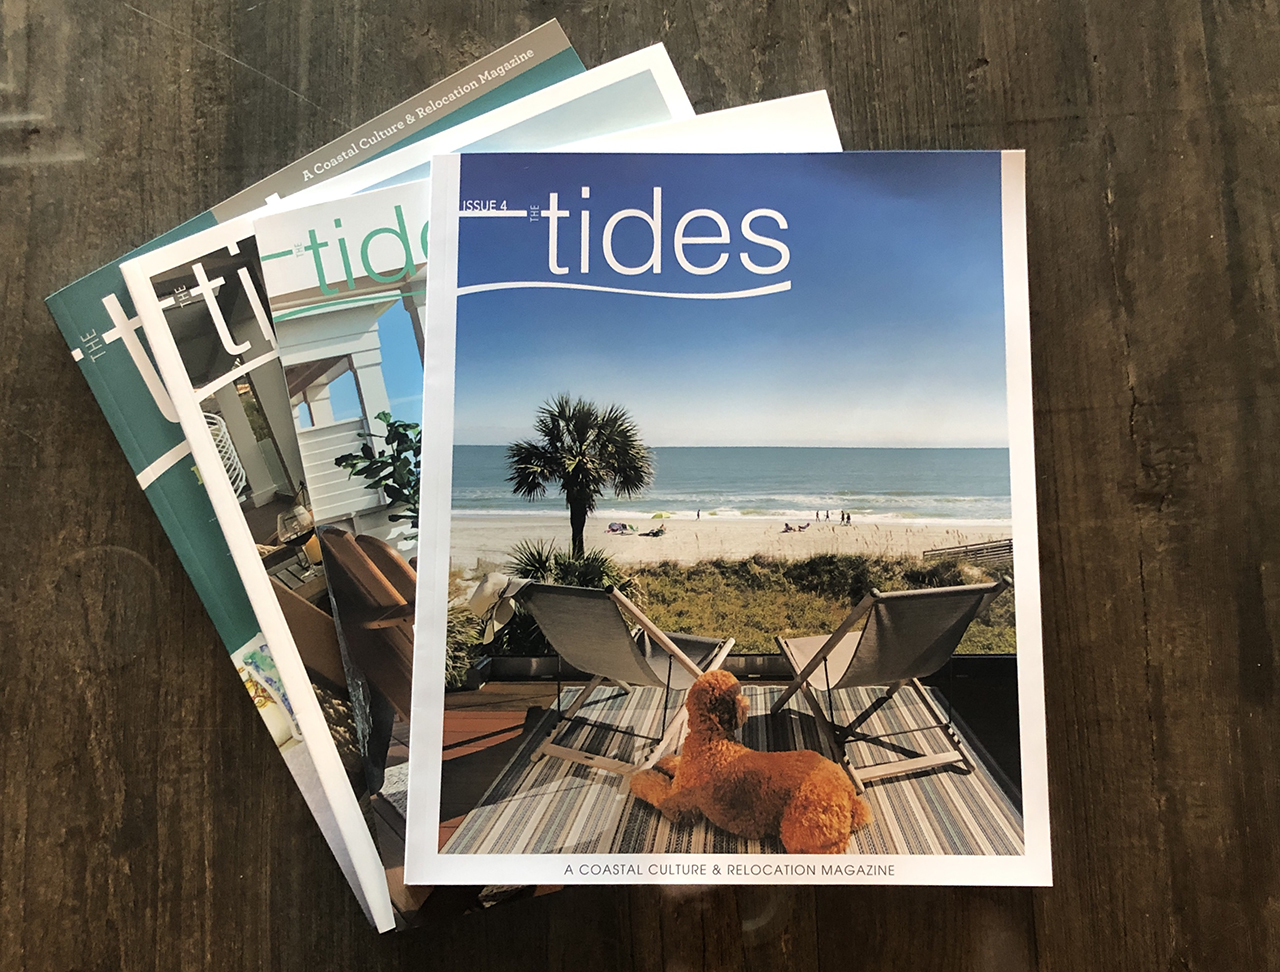 All four issues of The Tides Relocation Magazine